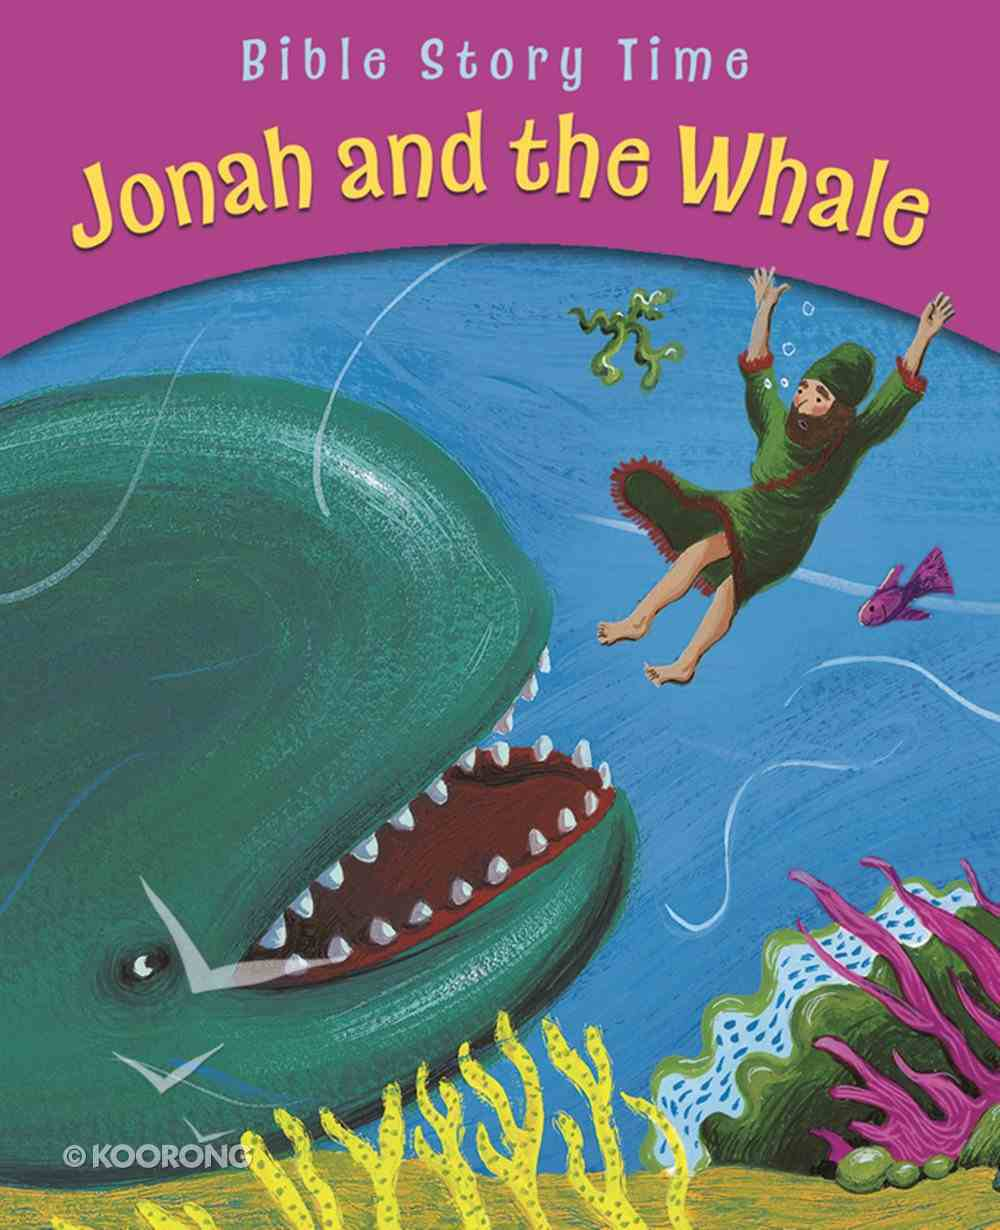 Jonah and the Whale (Bible Story Time Old Testament Series) eBook